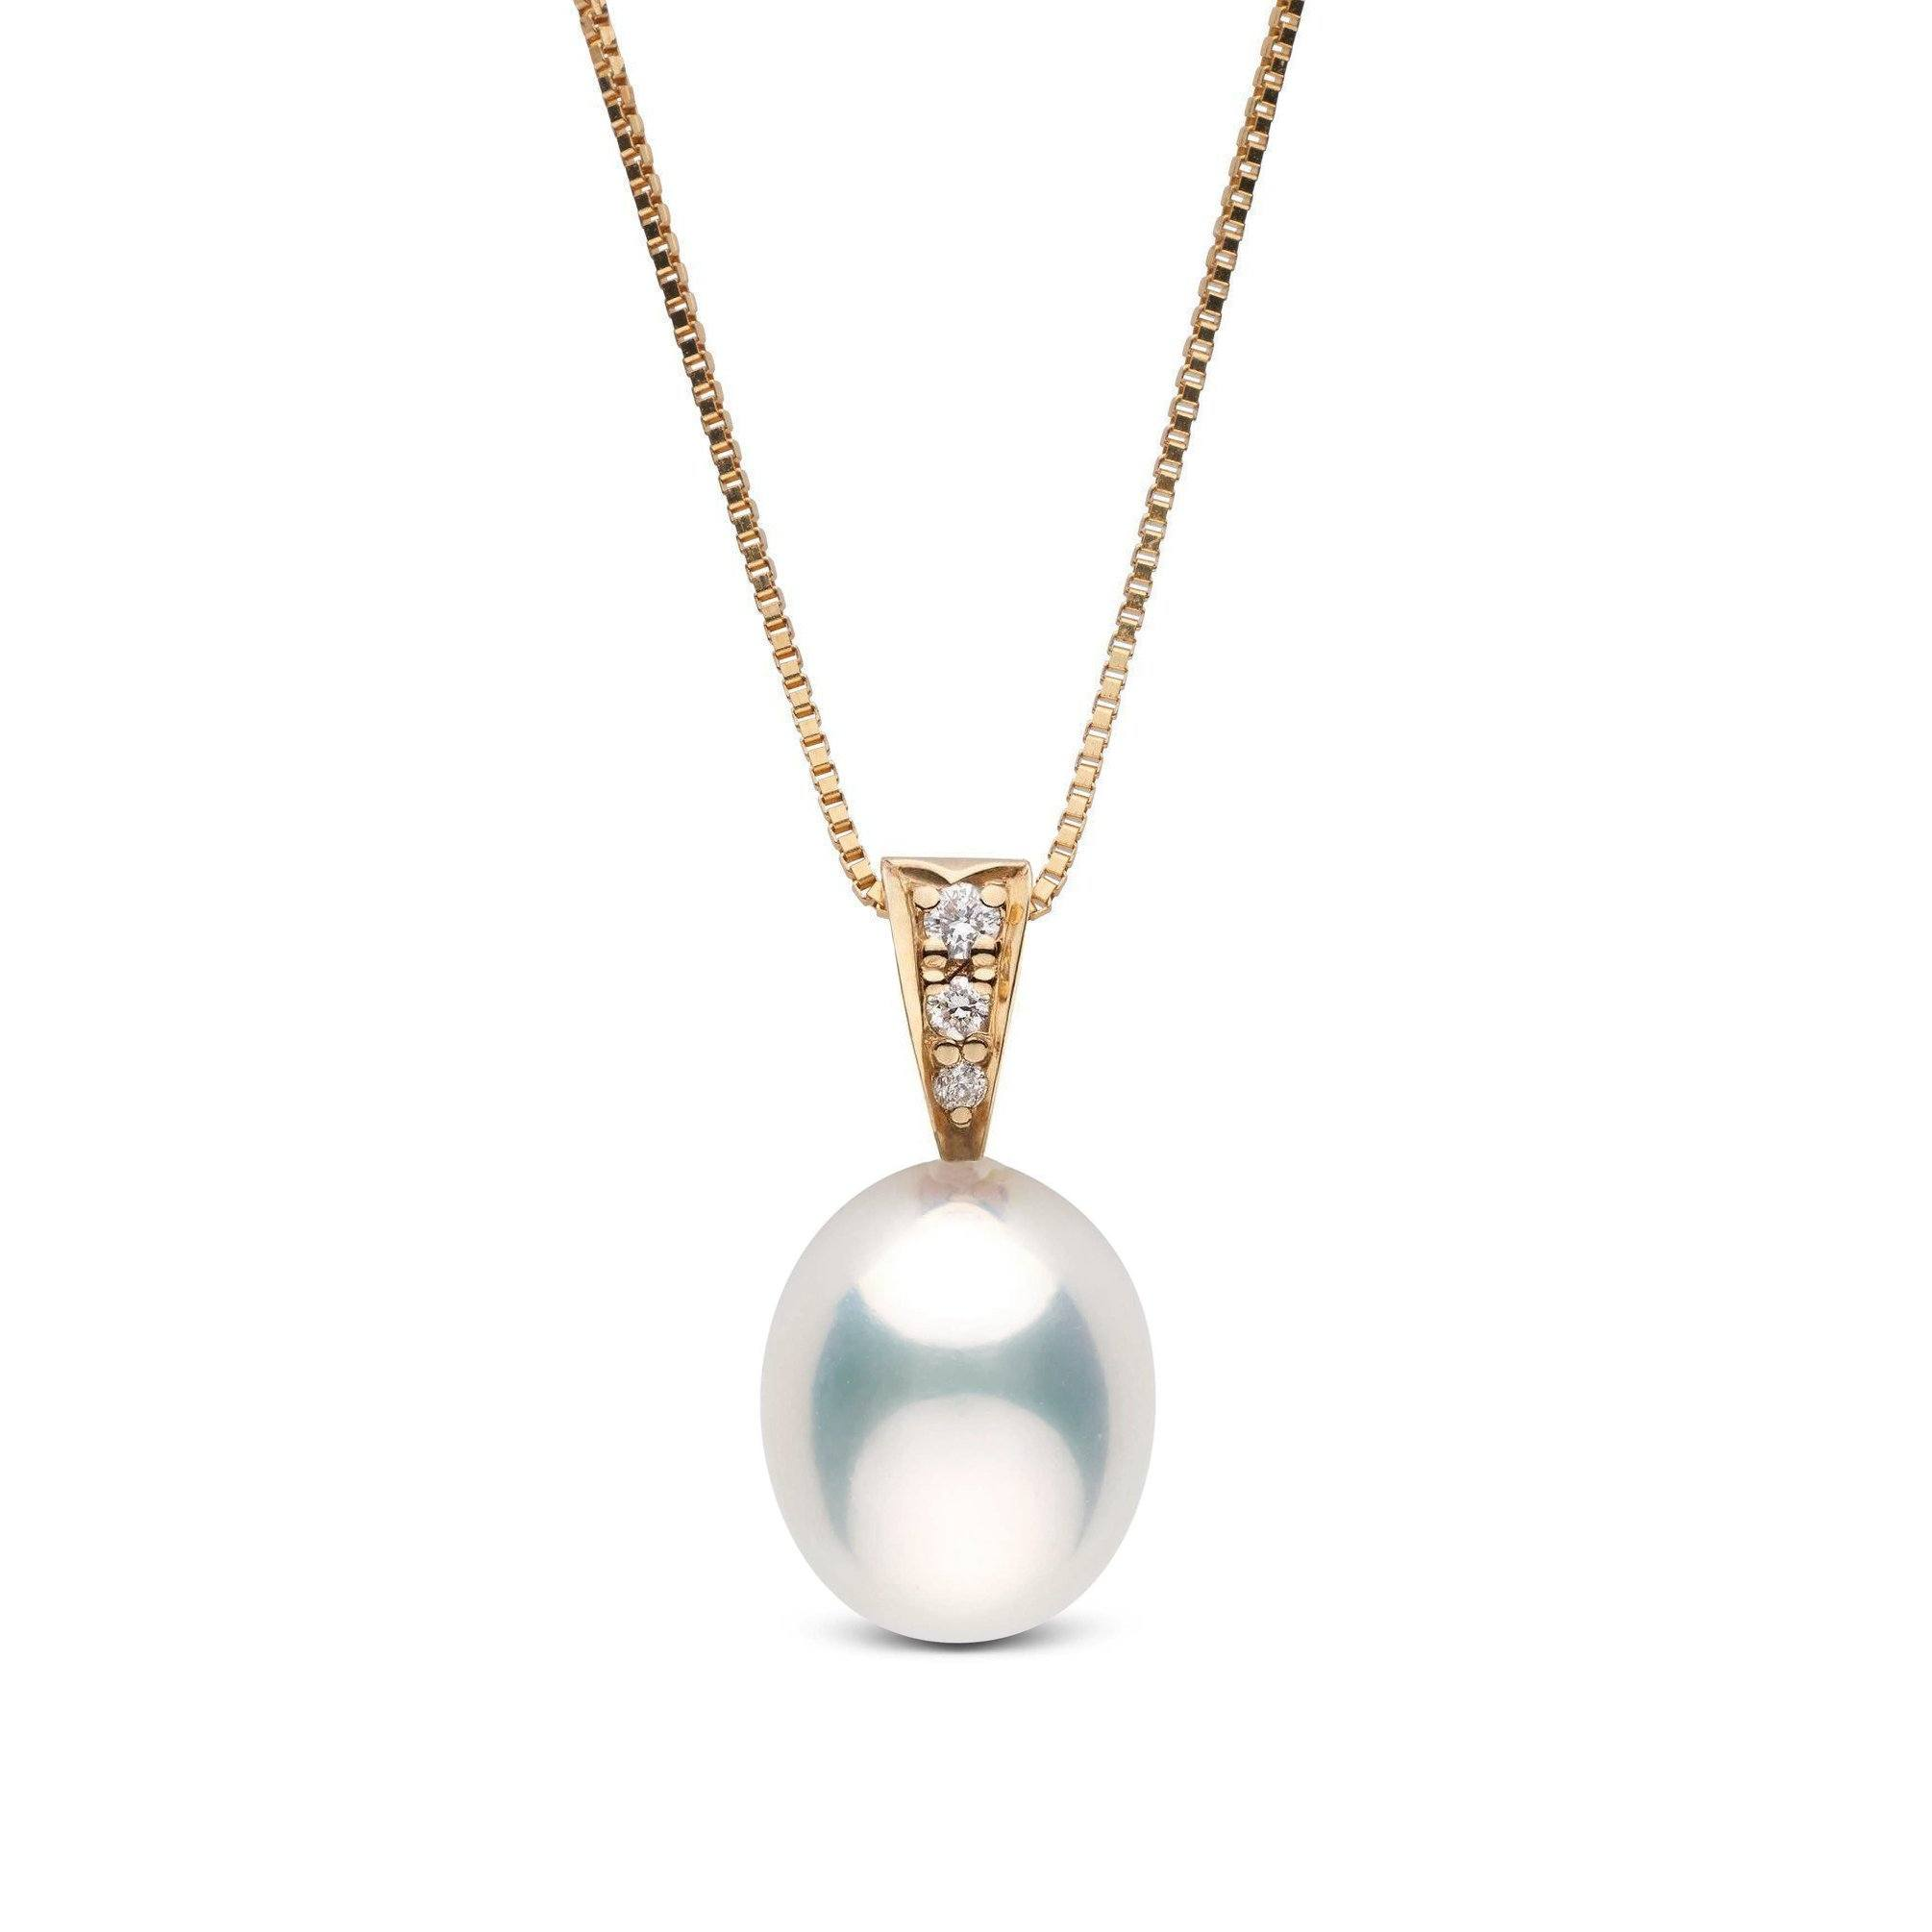 Desire Collection White 9.0-10.0 mm Drop Freshwater Pearl & Diamond Pendant